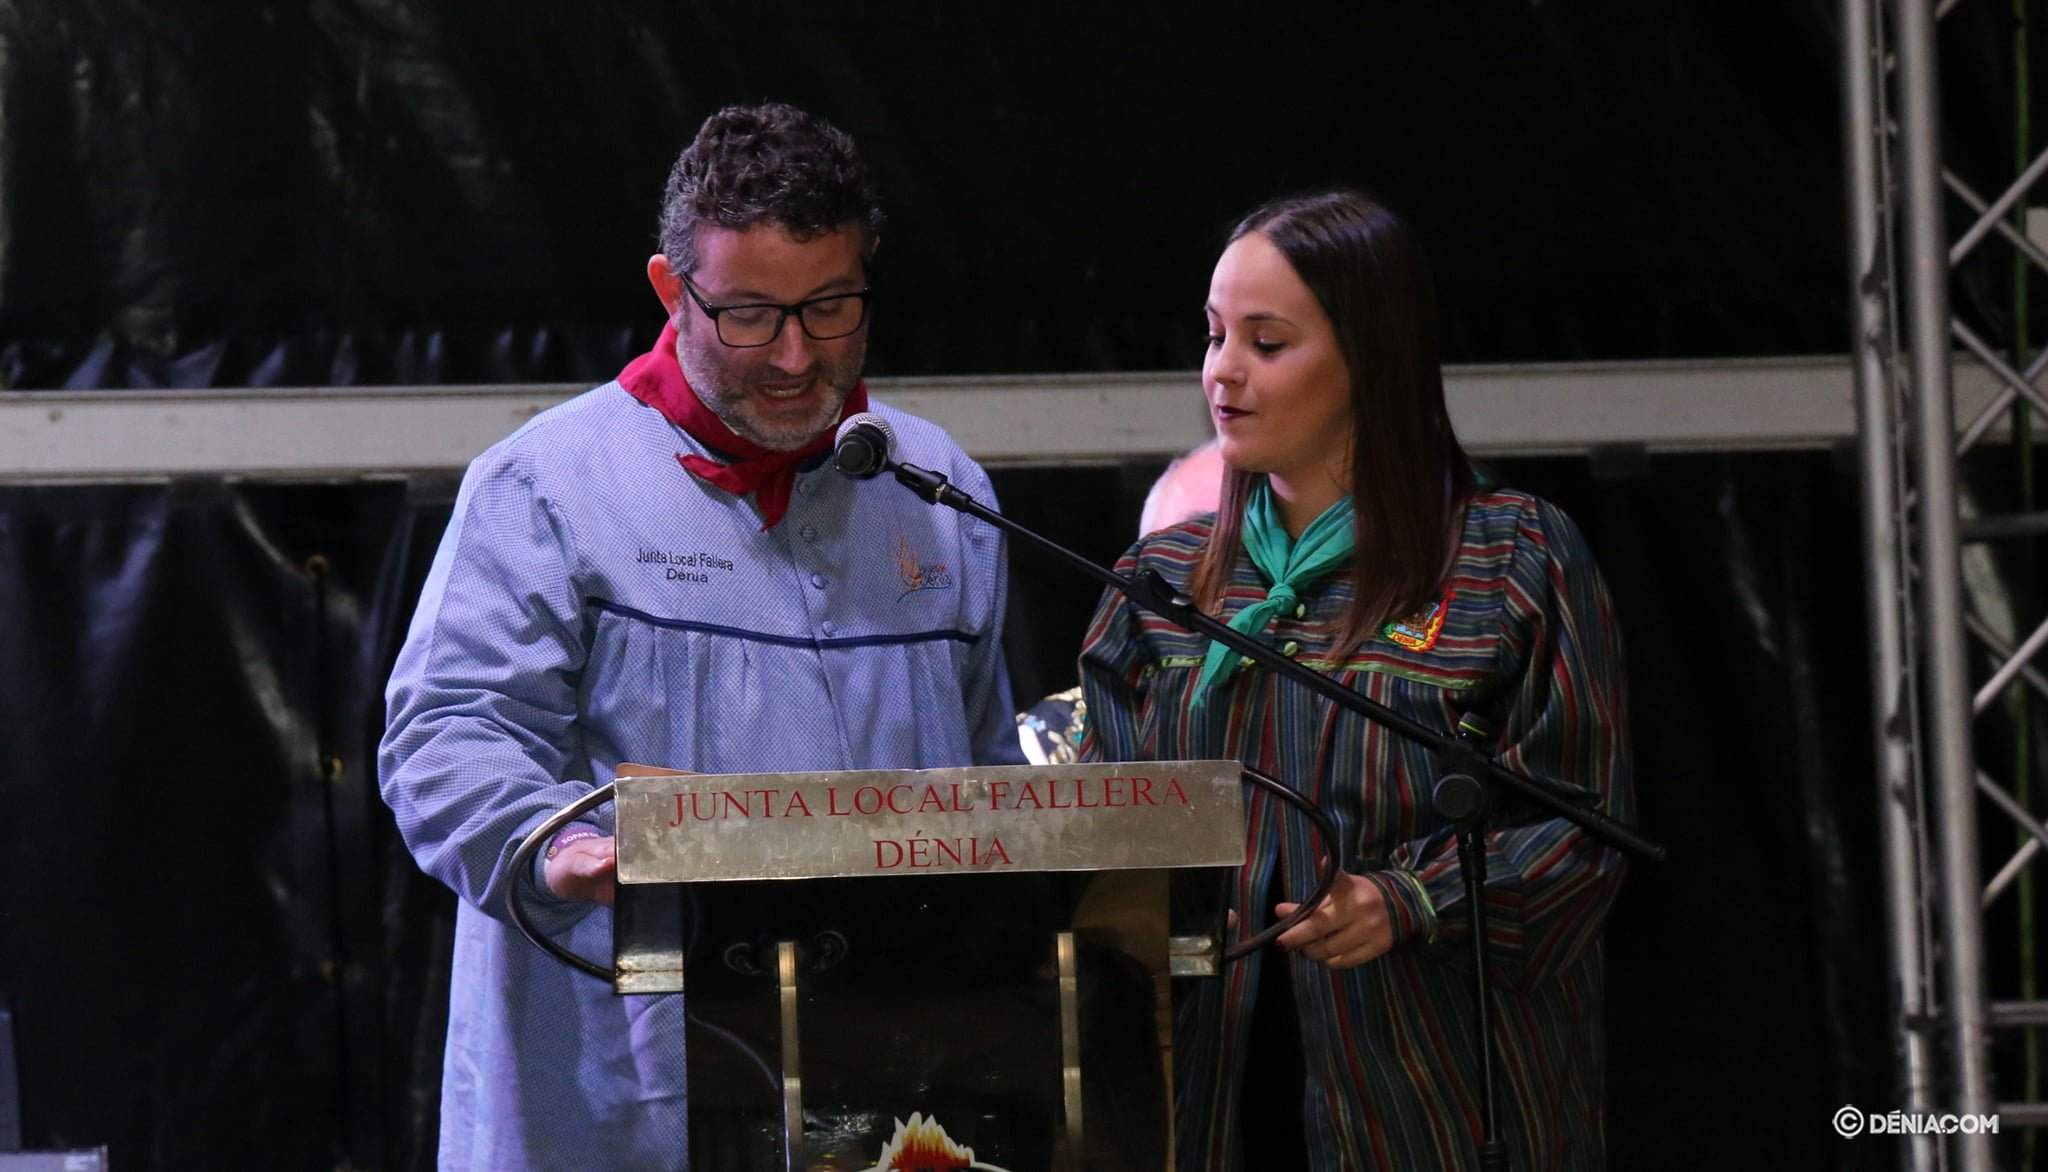 The presenter of the event, Melani Ivars, together with the Councilor for Fiestas, Óscar Mengual